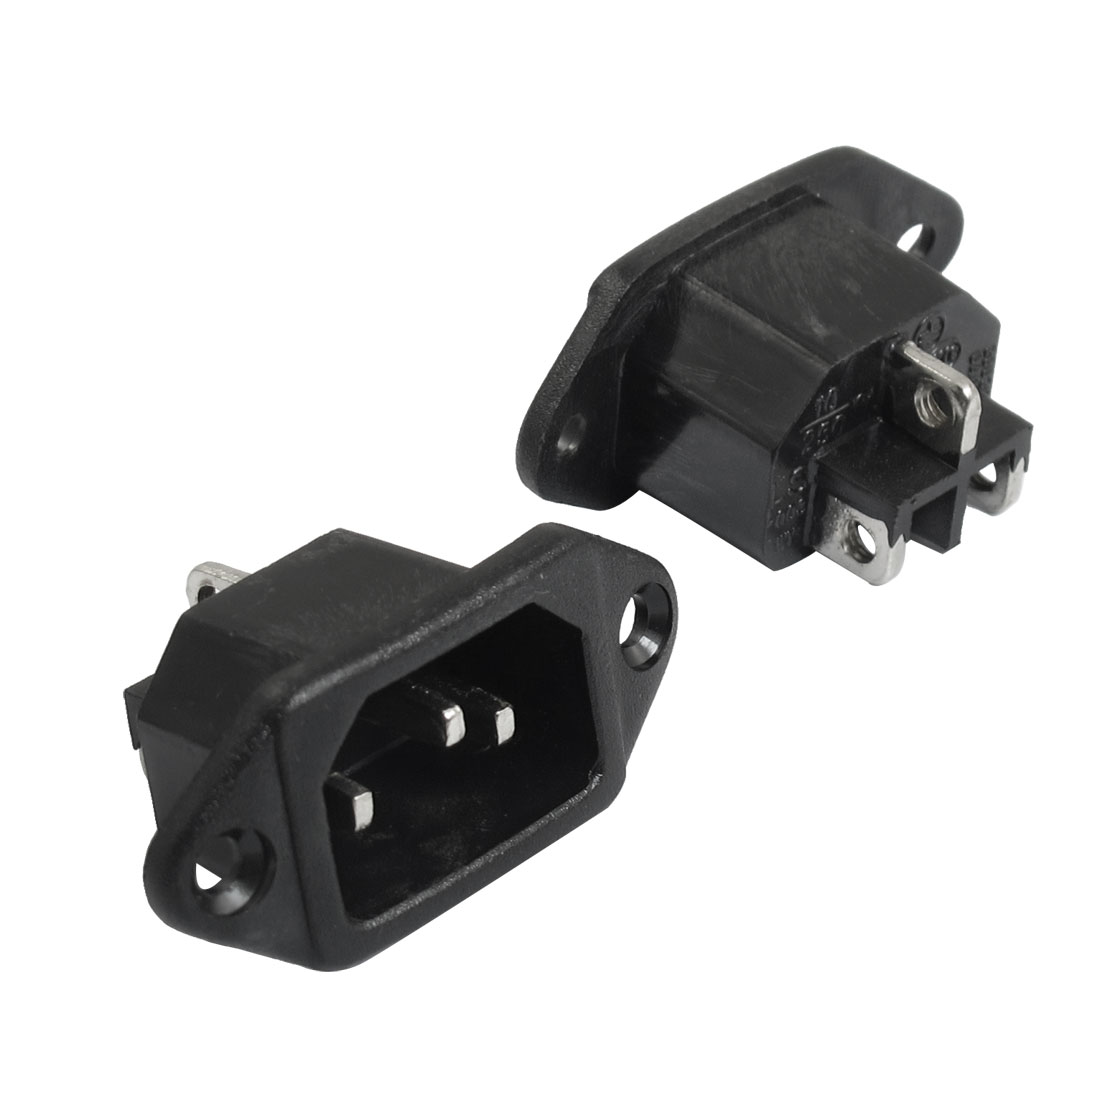 2 Pcs AC 250V 10A 3 Terminals C14 Plug Outlet Power Socket Adapter Black